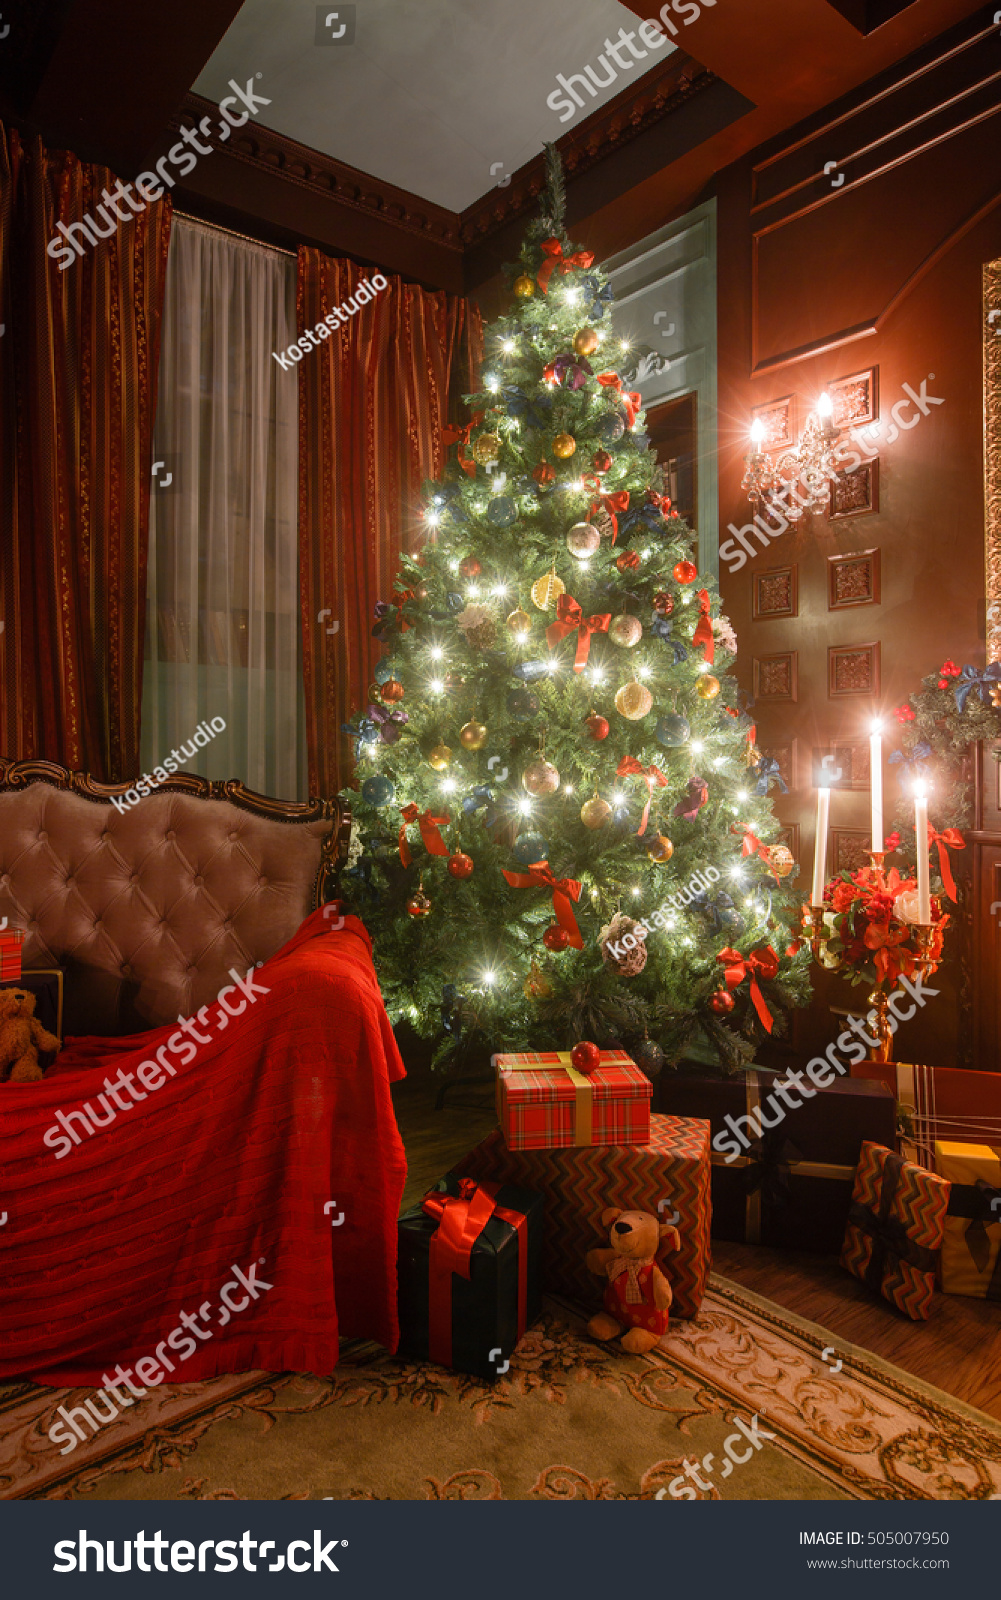 Christmas evening by candlelight classic apartments with a white fireplace decorated tree sofa large windows and chandelier